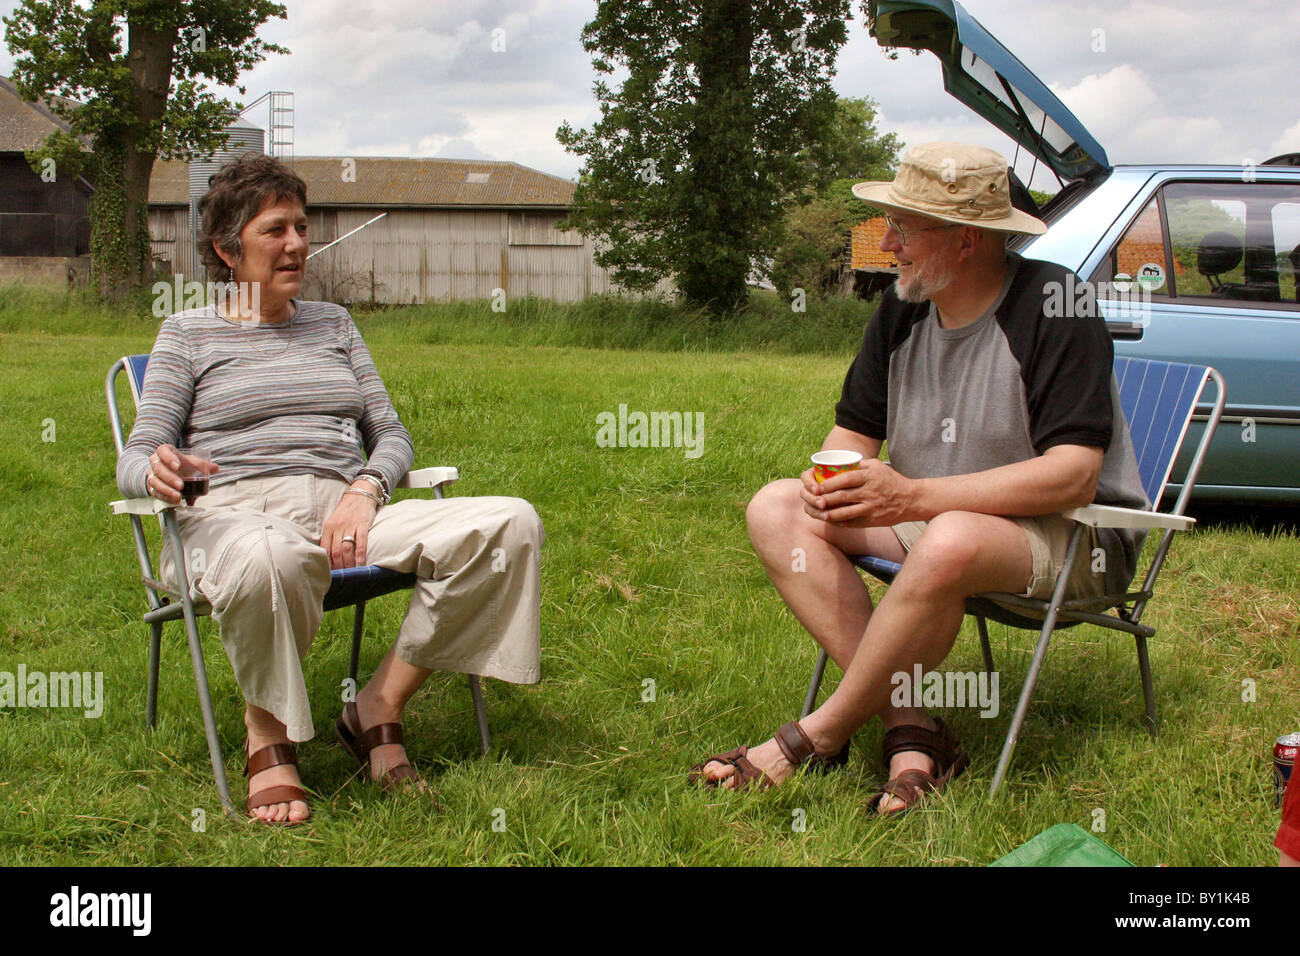 Typical English scene with old couple eating a picnic in the countryside by the parked car - Stock Image